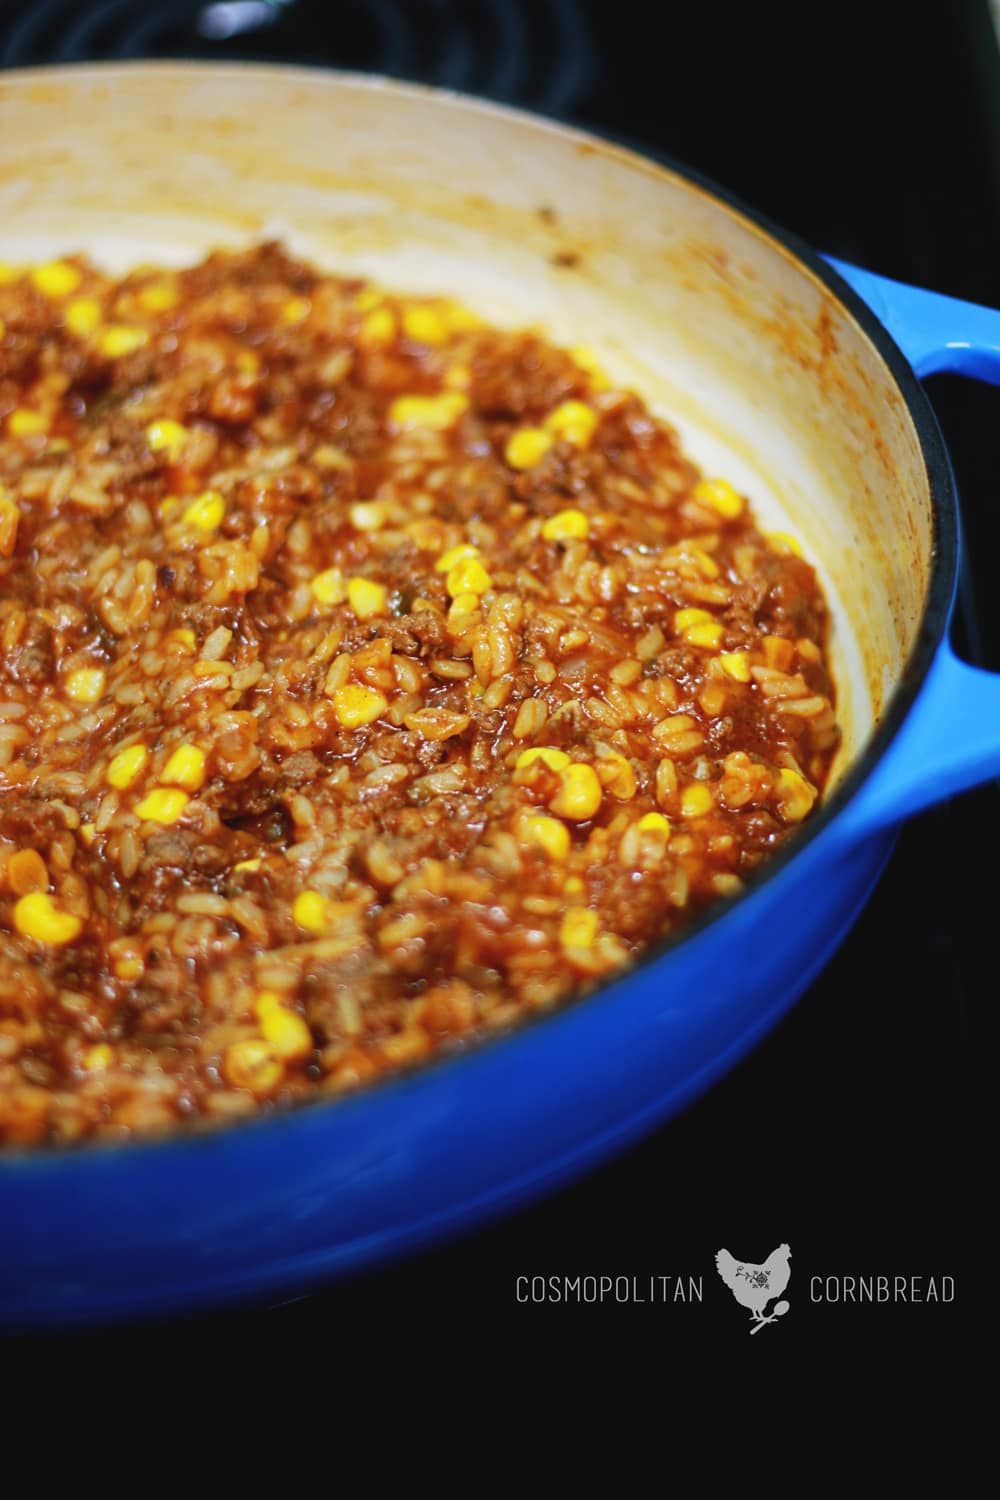 Spanish Rice Supper - a quick and easy one skillet meal | Cosmopolitan Cornbread